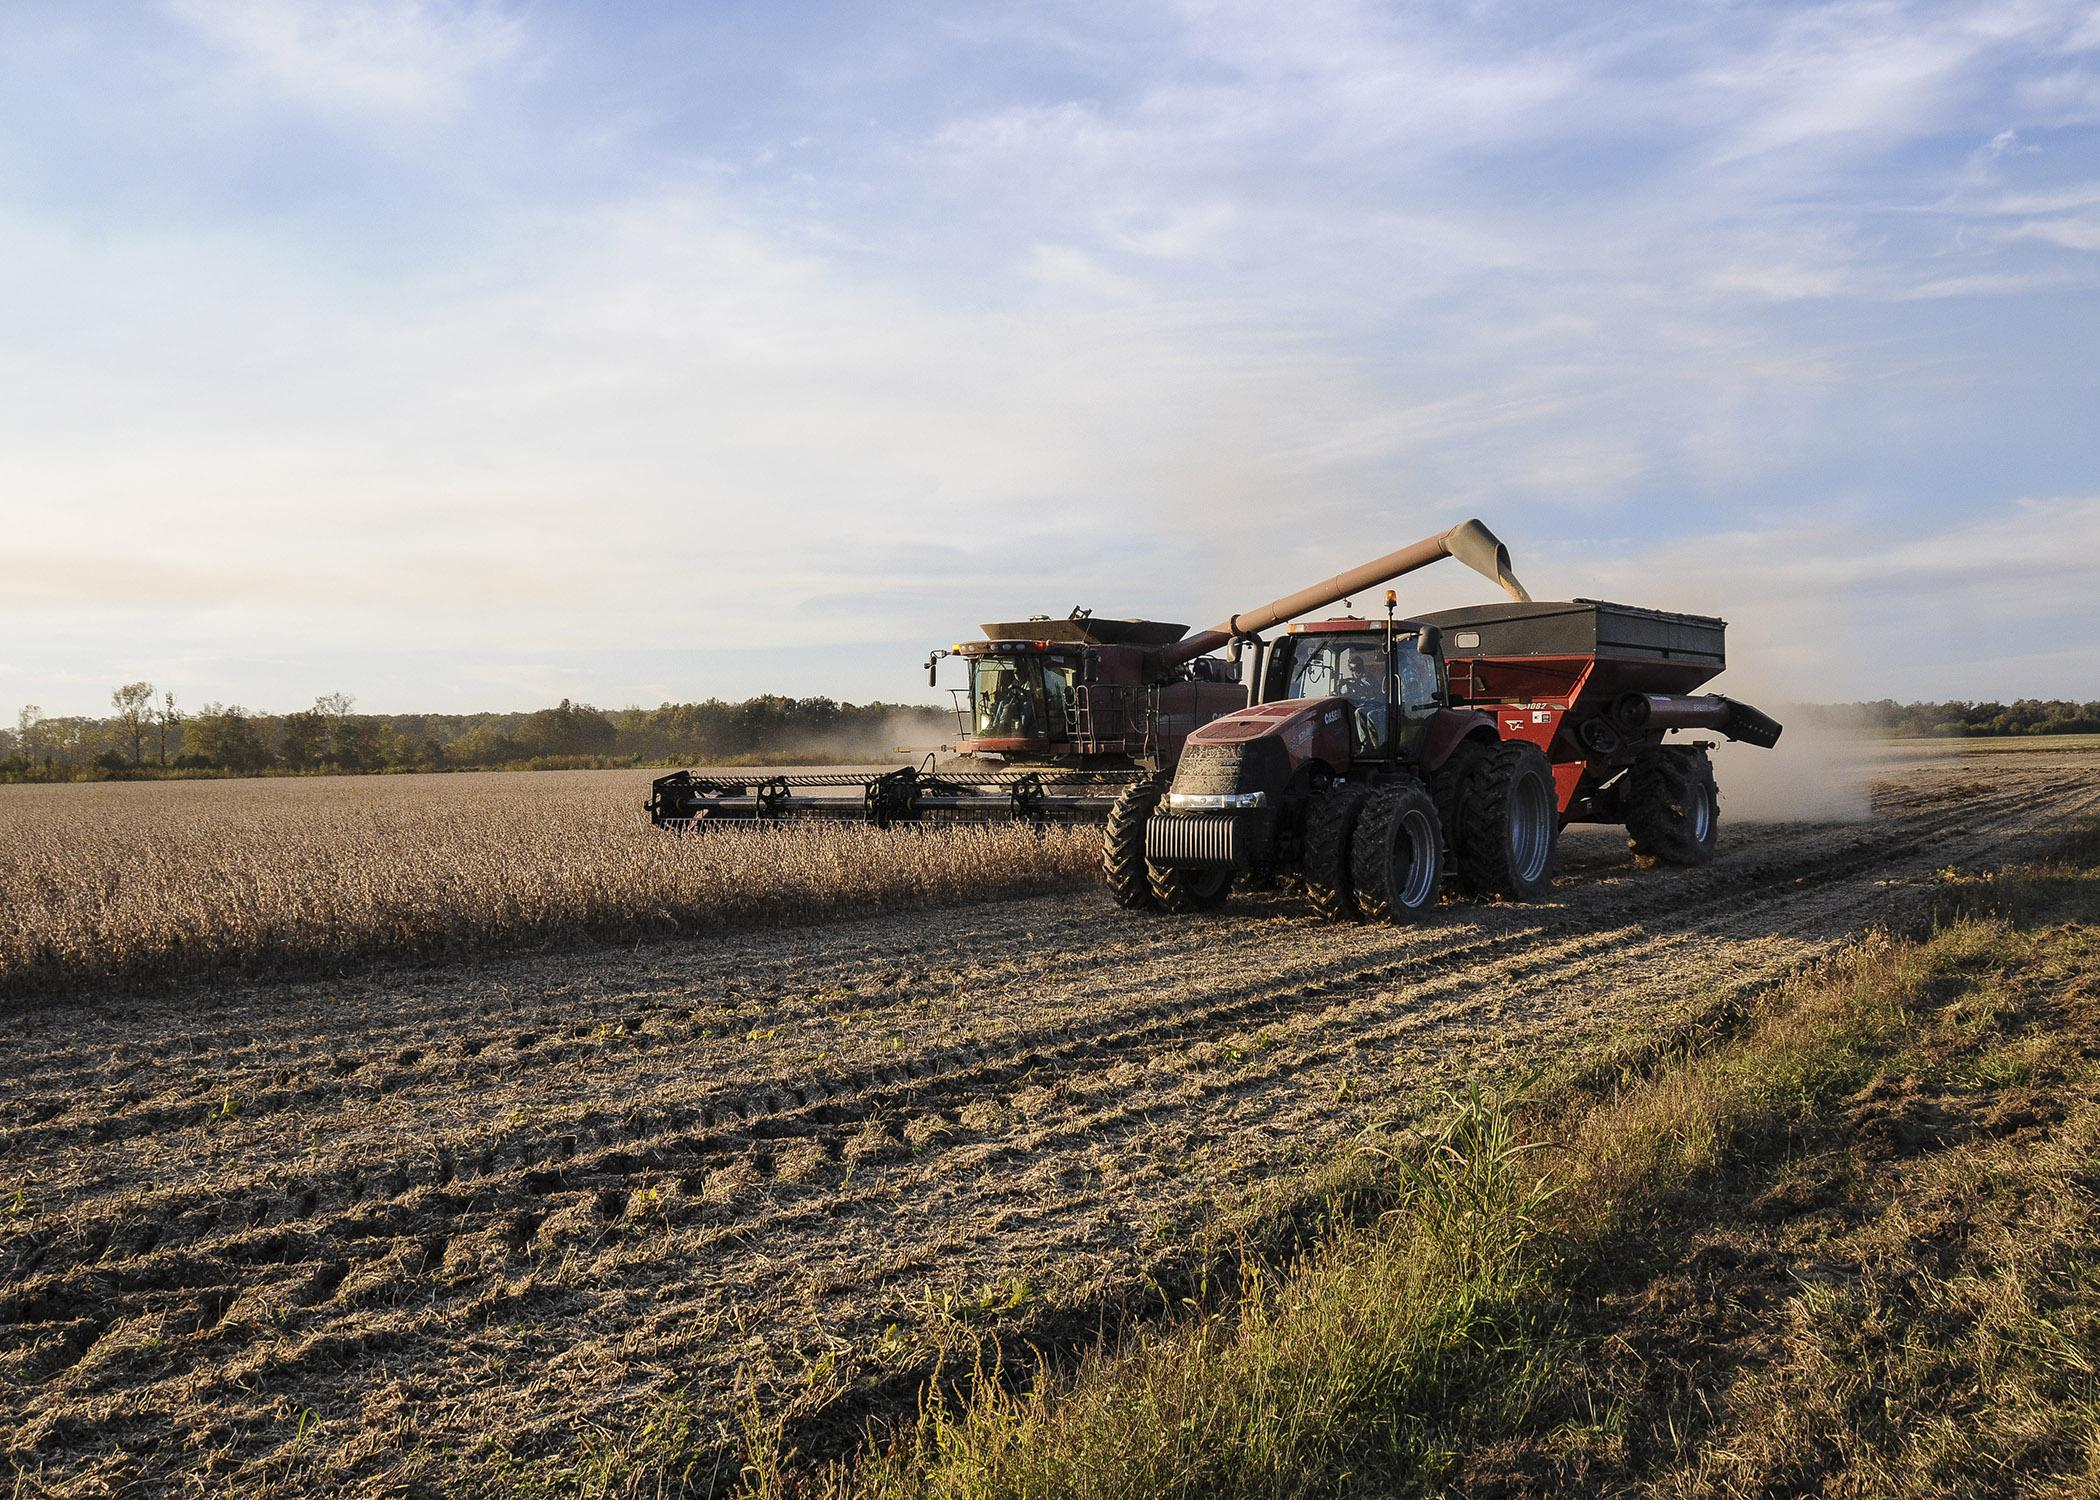 Careful farming practices, such as reduced tillage and restricted traffic patterns, can reduce soil compaction in fields. Compacted soil prevents plant roots from reaching as deep into the soil as needed for peak performance. (Photo by MSU Ag Communications/Scott Corey)